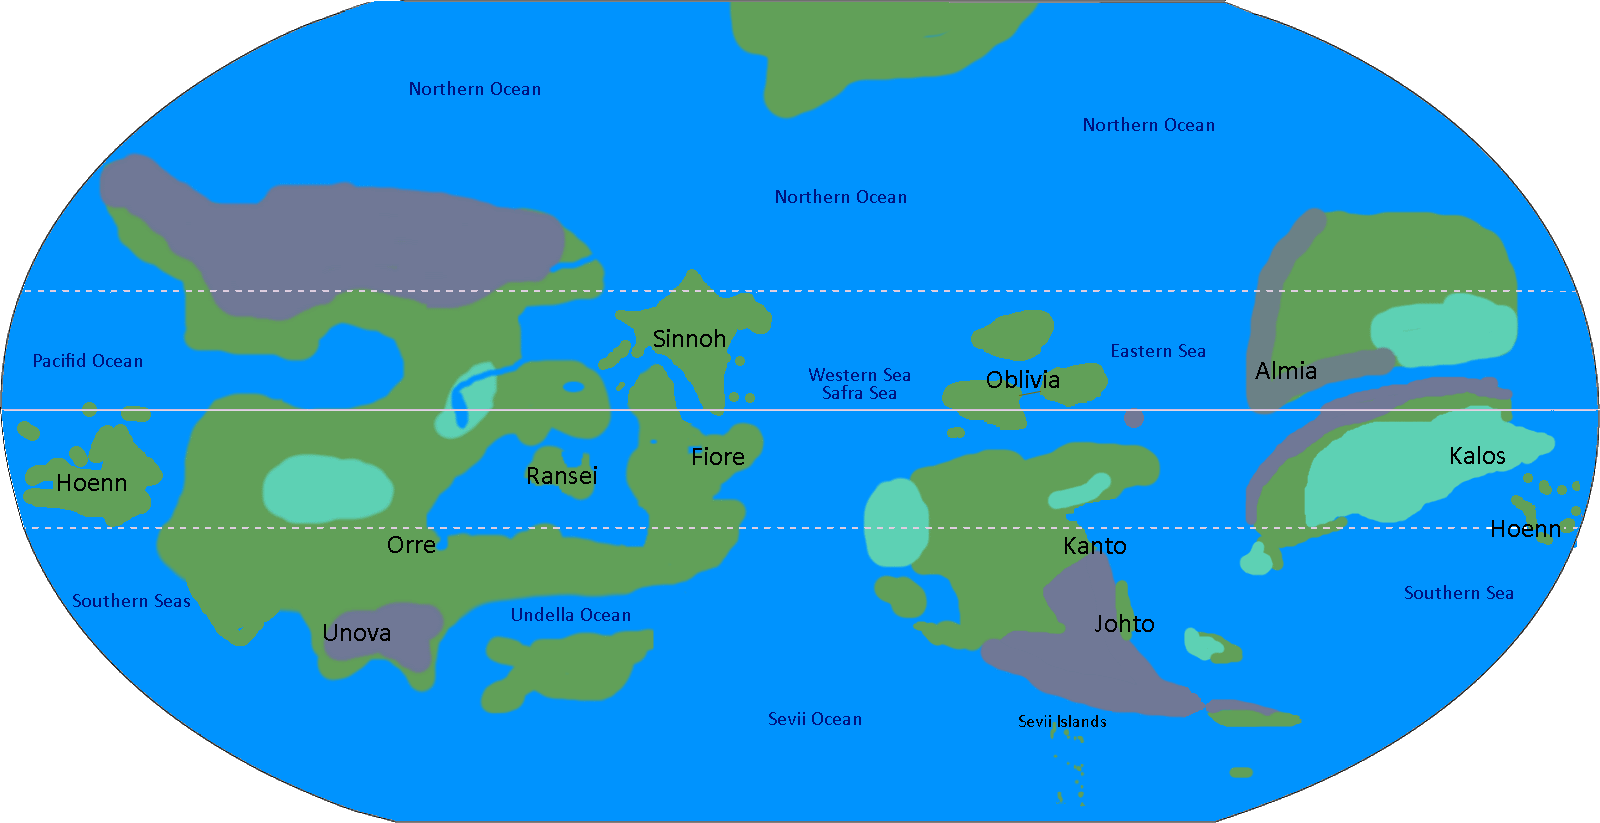 Transparent maps accurate. The pokemon world map